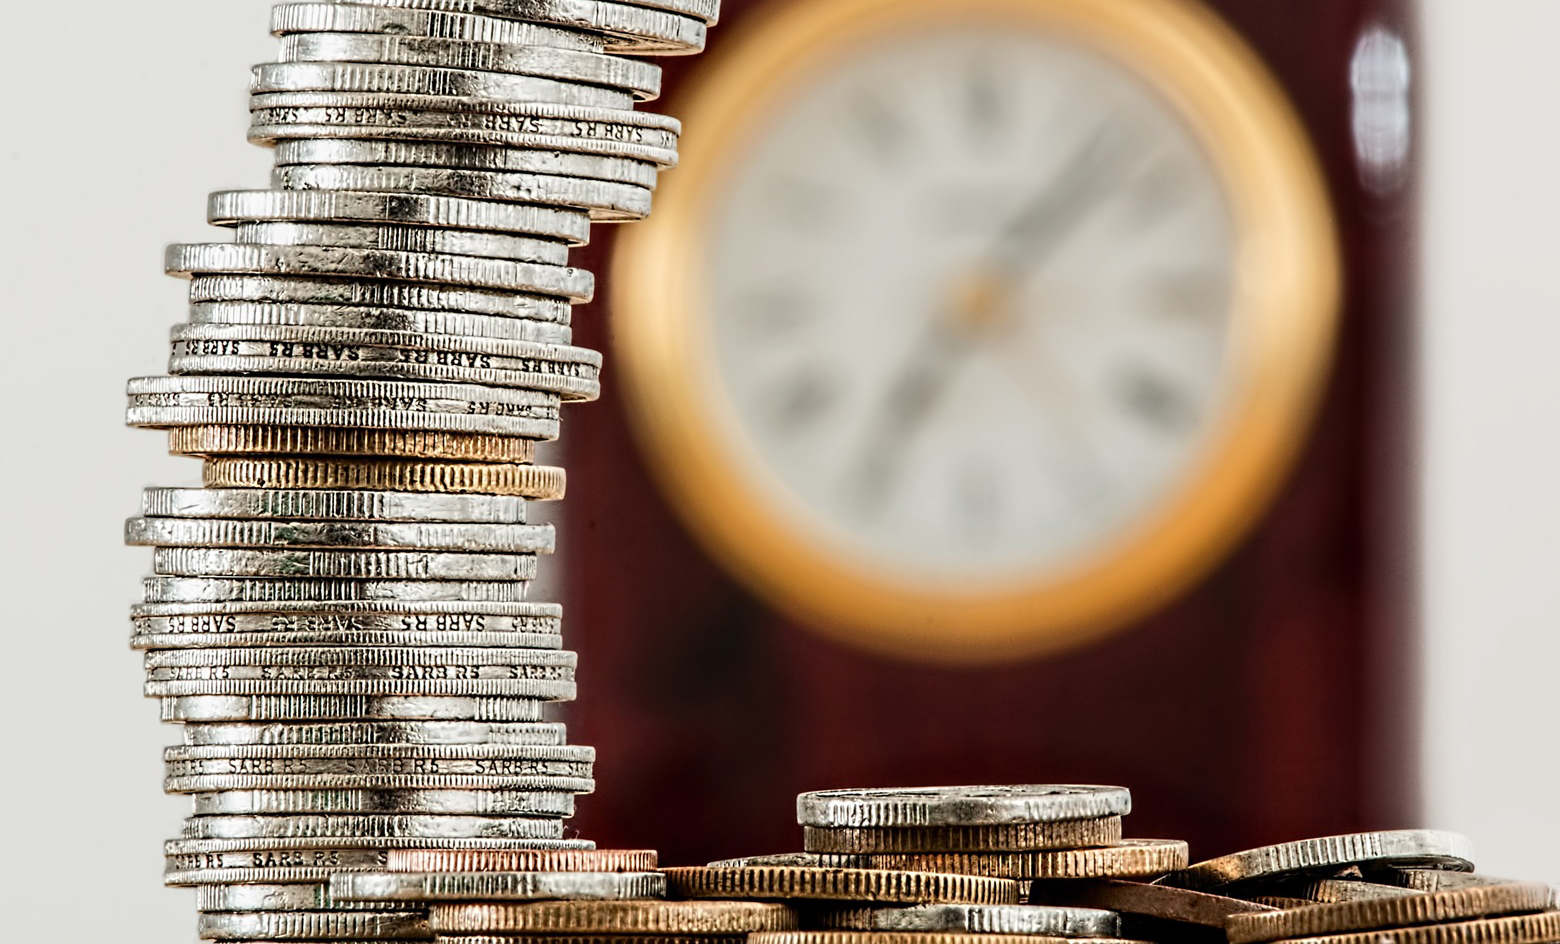 GCFP launches contest to develop new type of retirement plan for the public sector